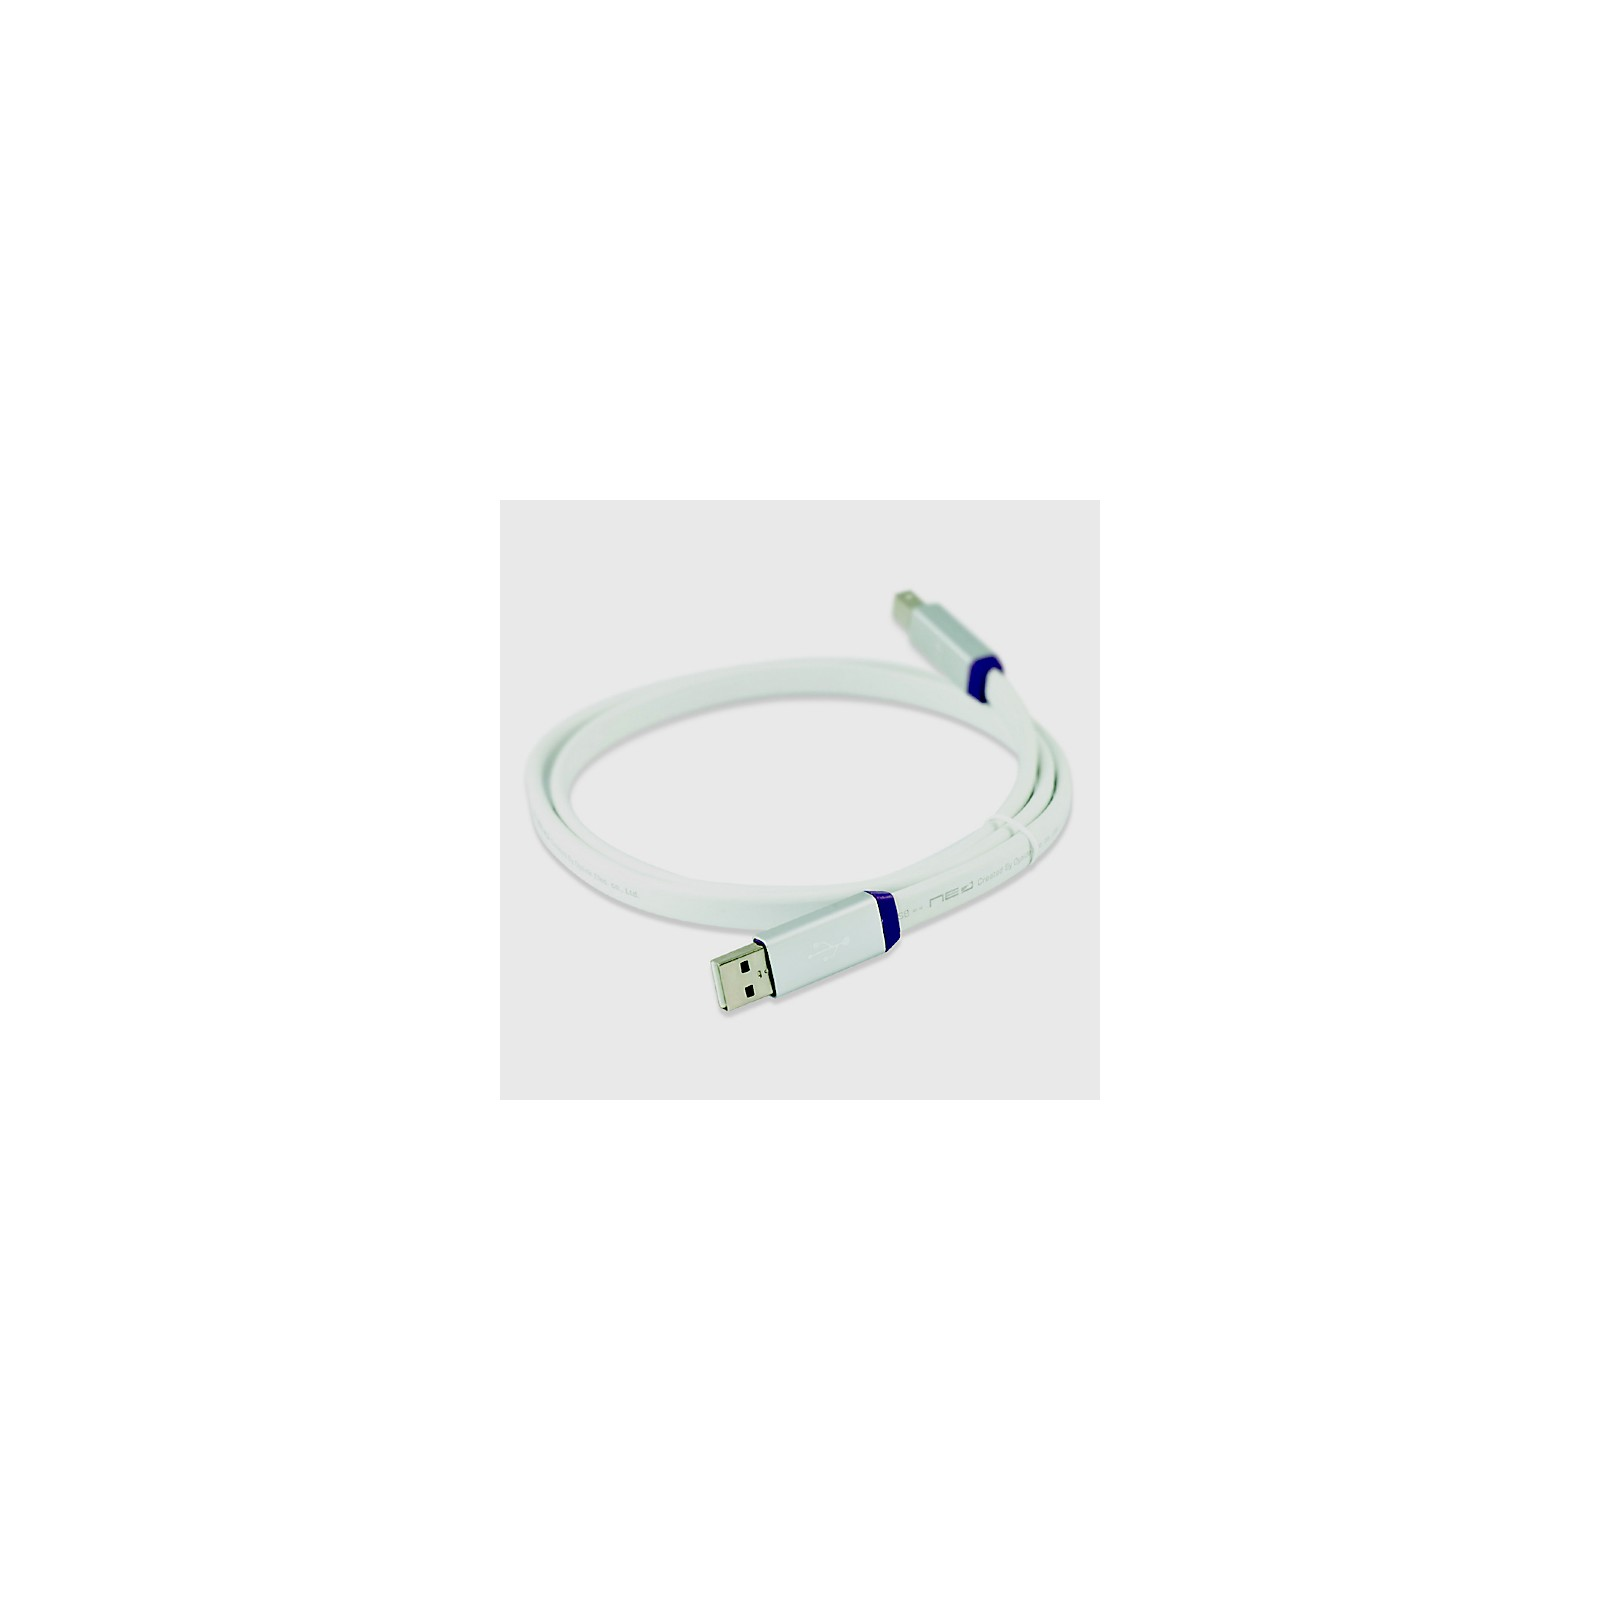 Oyaide Neo d+ Series Class S USB Cable